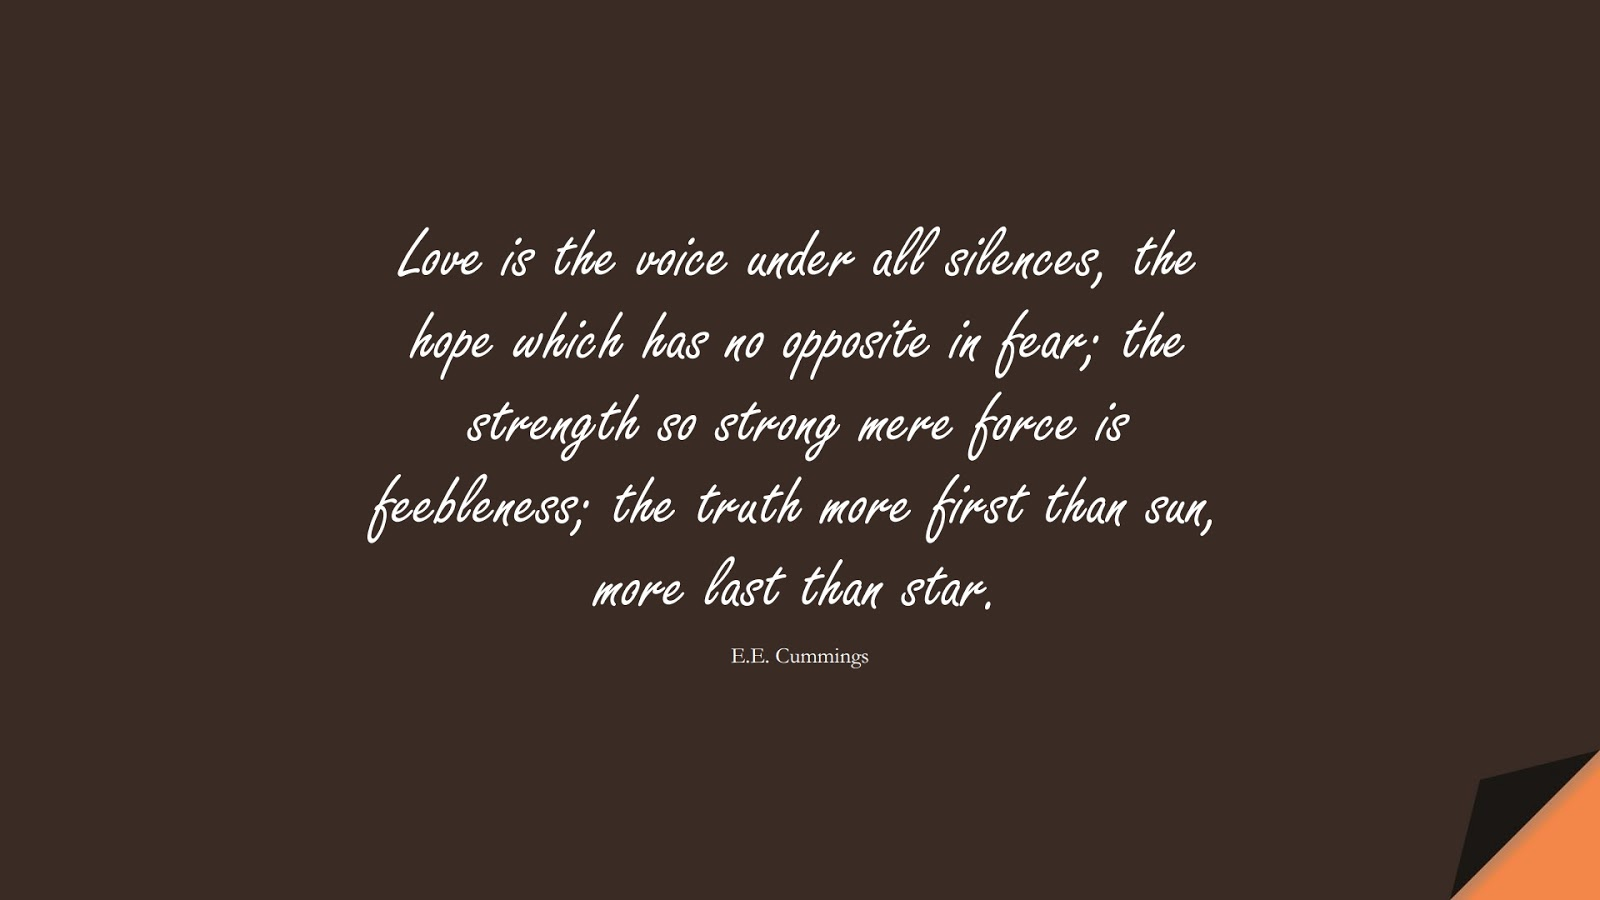 Love is the voice under all silences, the hope which has no opposite in fear; the strength so strong mere force is feebleness; the truth more first than sun, more last than star. (E.E. Cummings);  #LoveQuotes